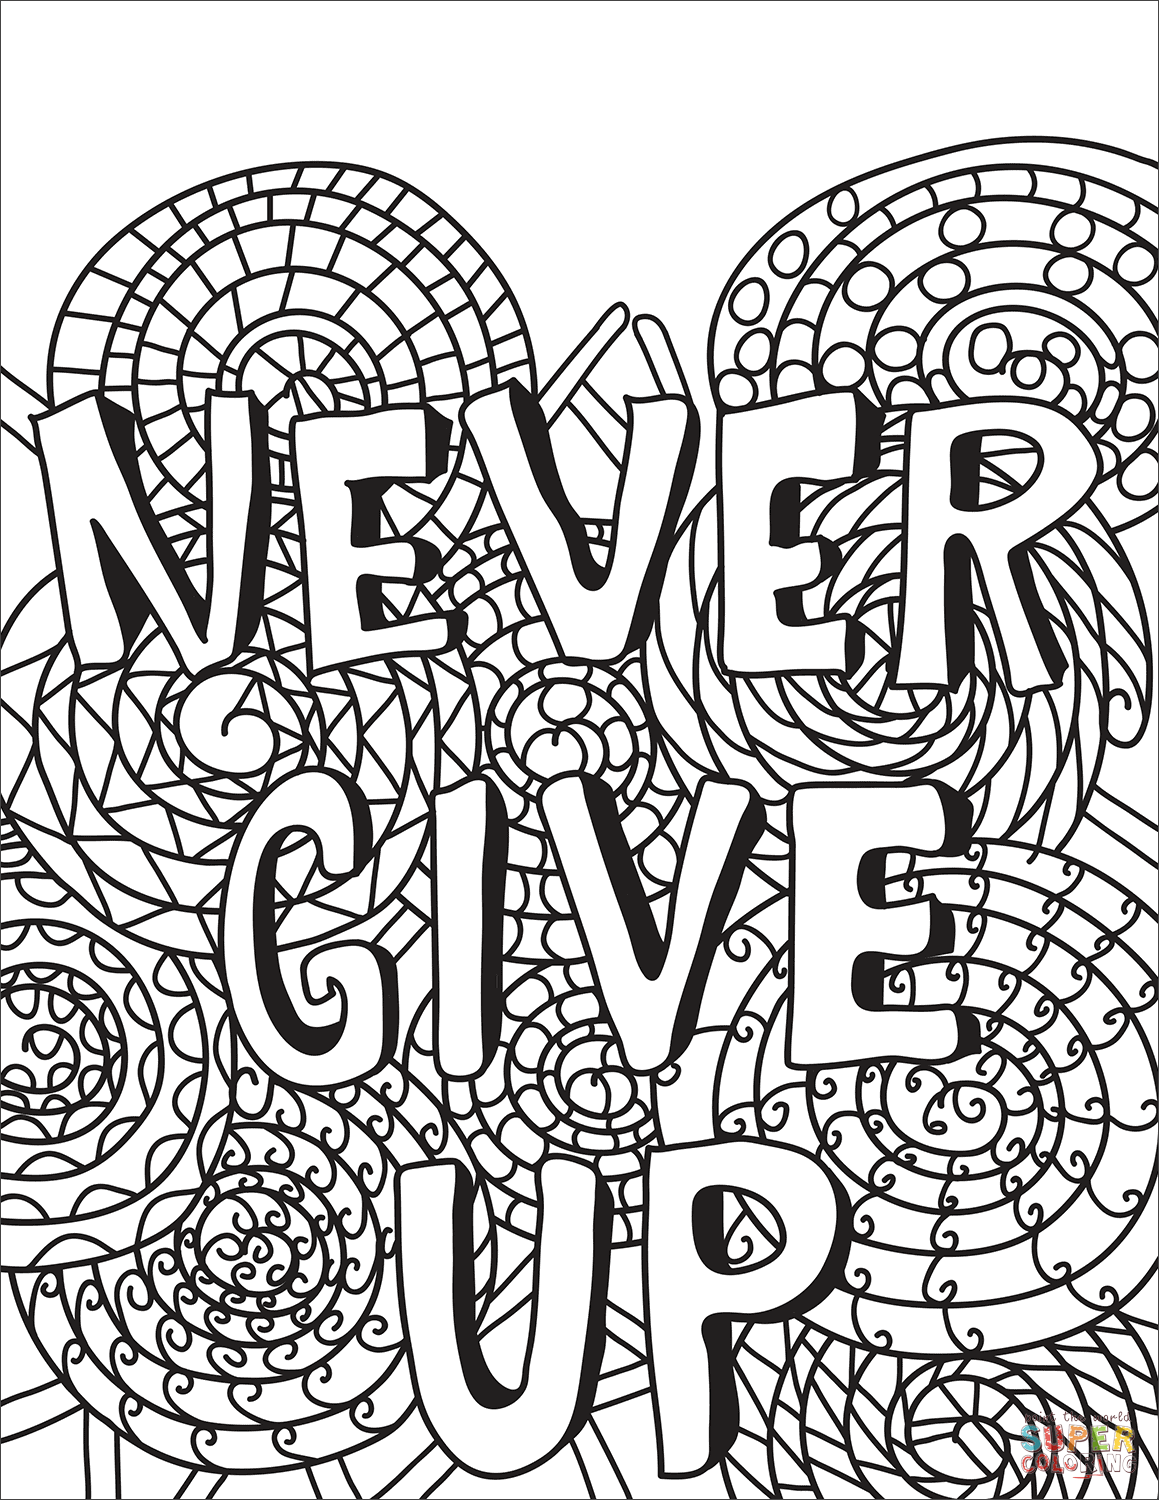 Never Give Up Coloring Page